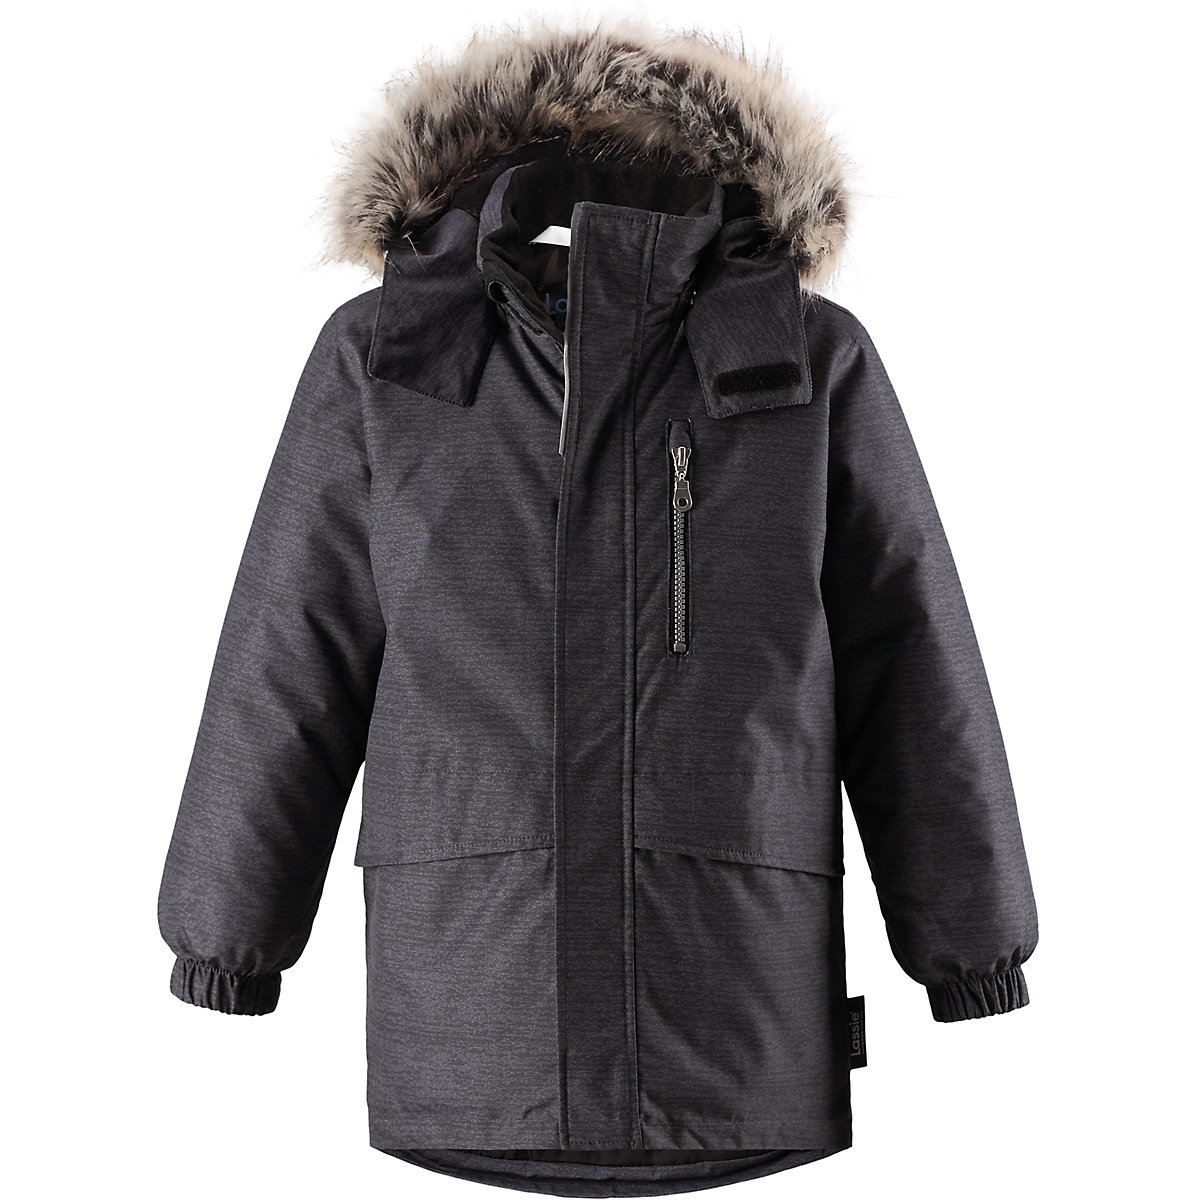 Jackets & Coats LASSIE for boys 8625786 Jacket Coat Denim Cardigan Warm Children clothes Kids winter jacket men casual male coat warm men zipper outwear duck down jacket middle long mens parka with fur hood thick jackets